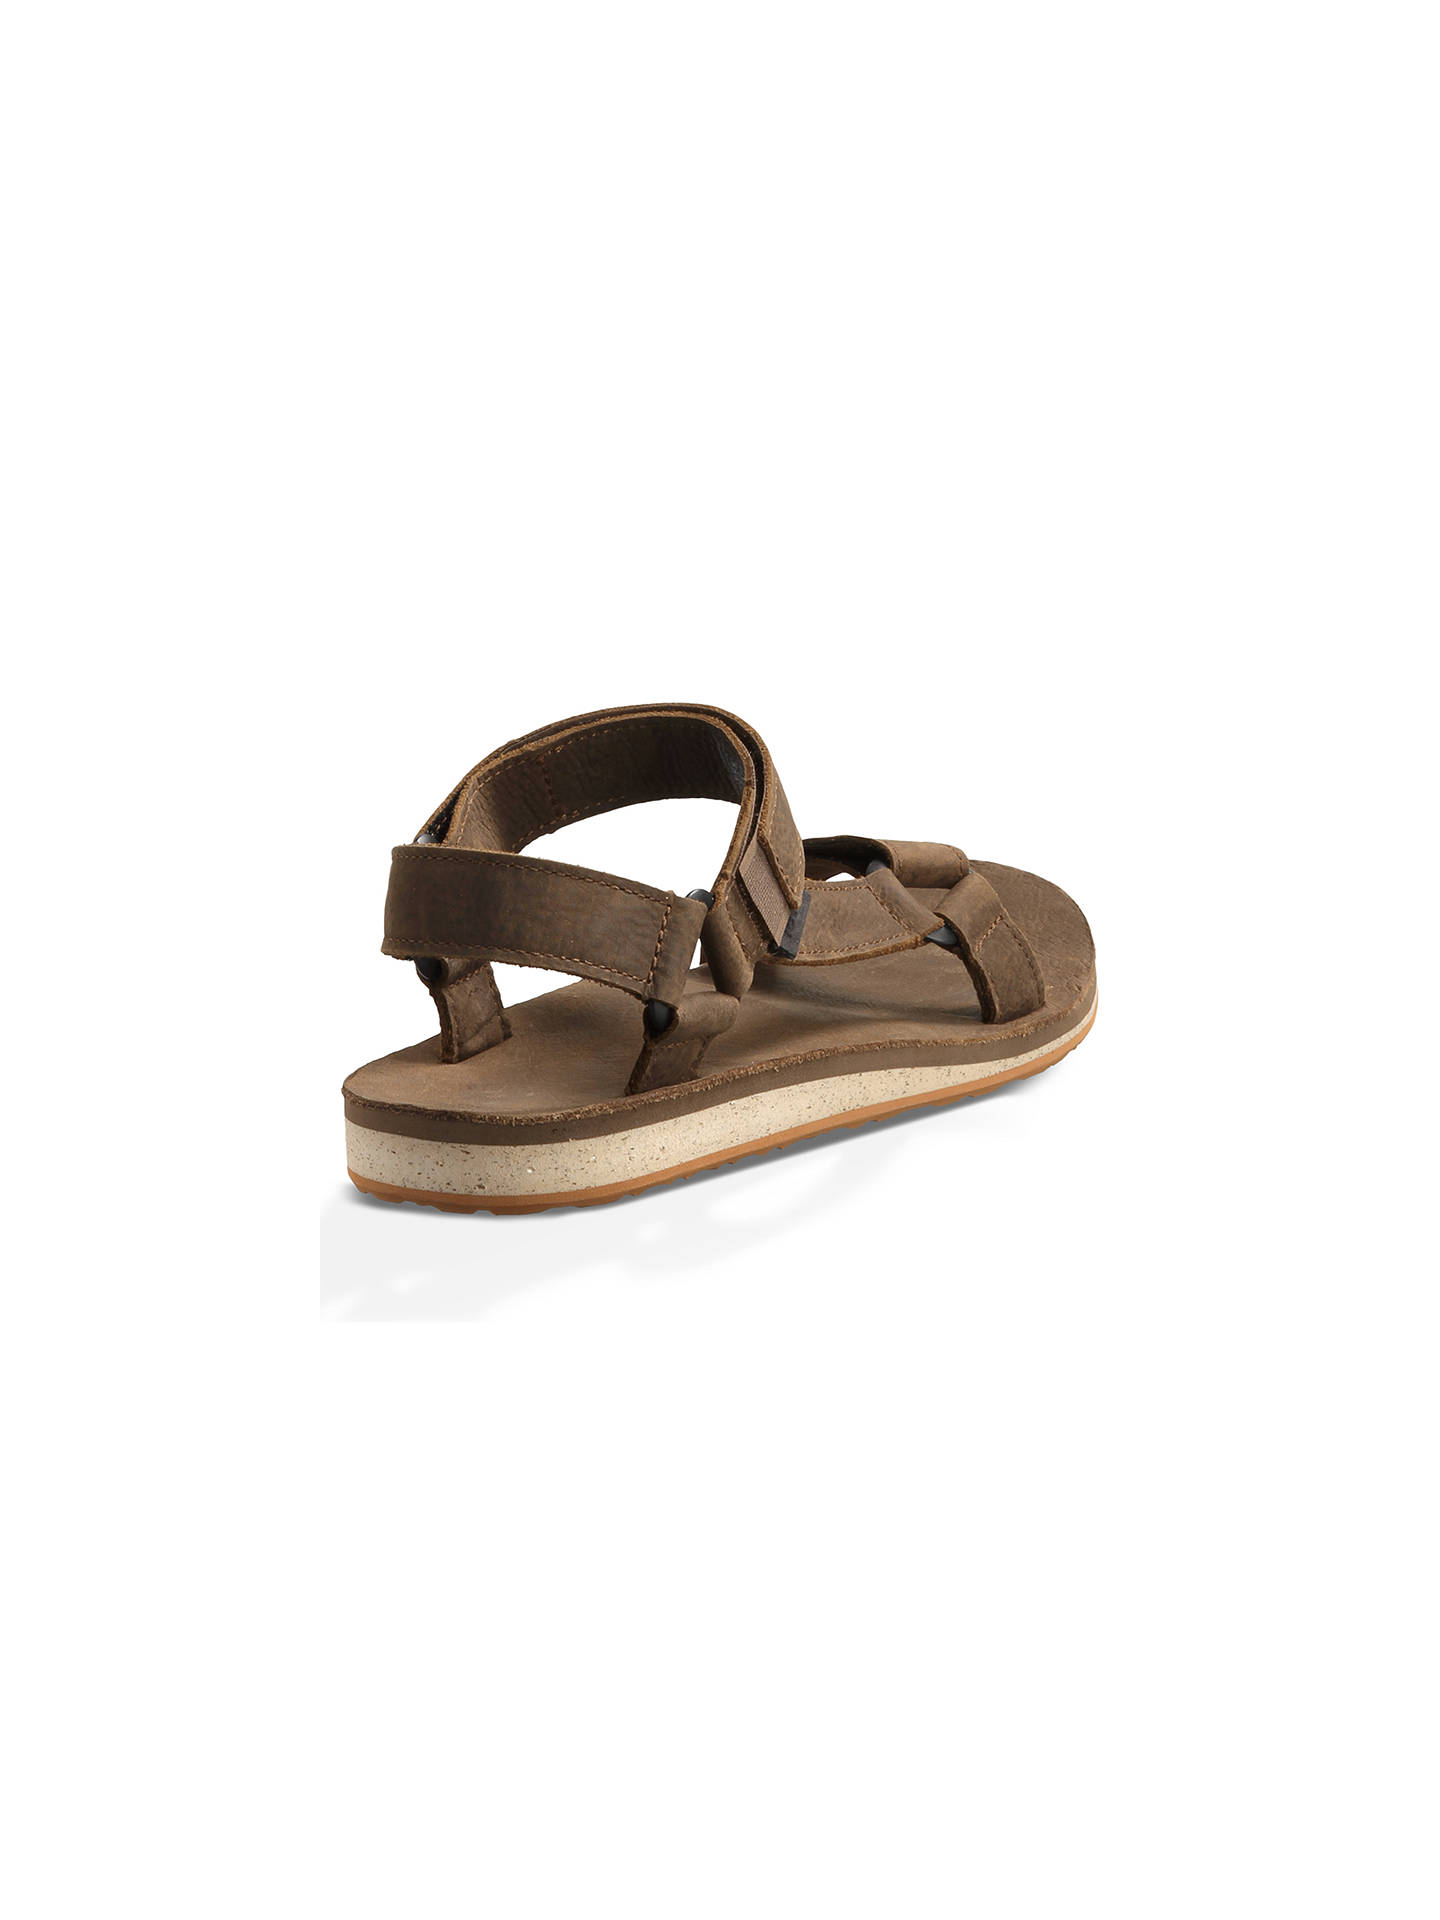 3fbea78f2 Buy Teva Original Universal Premium Leather Men s Sandals